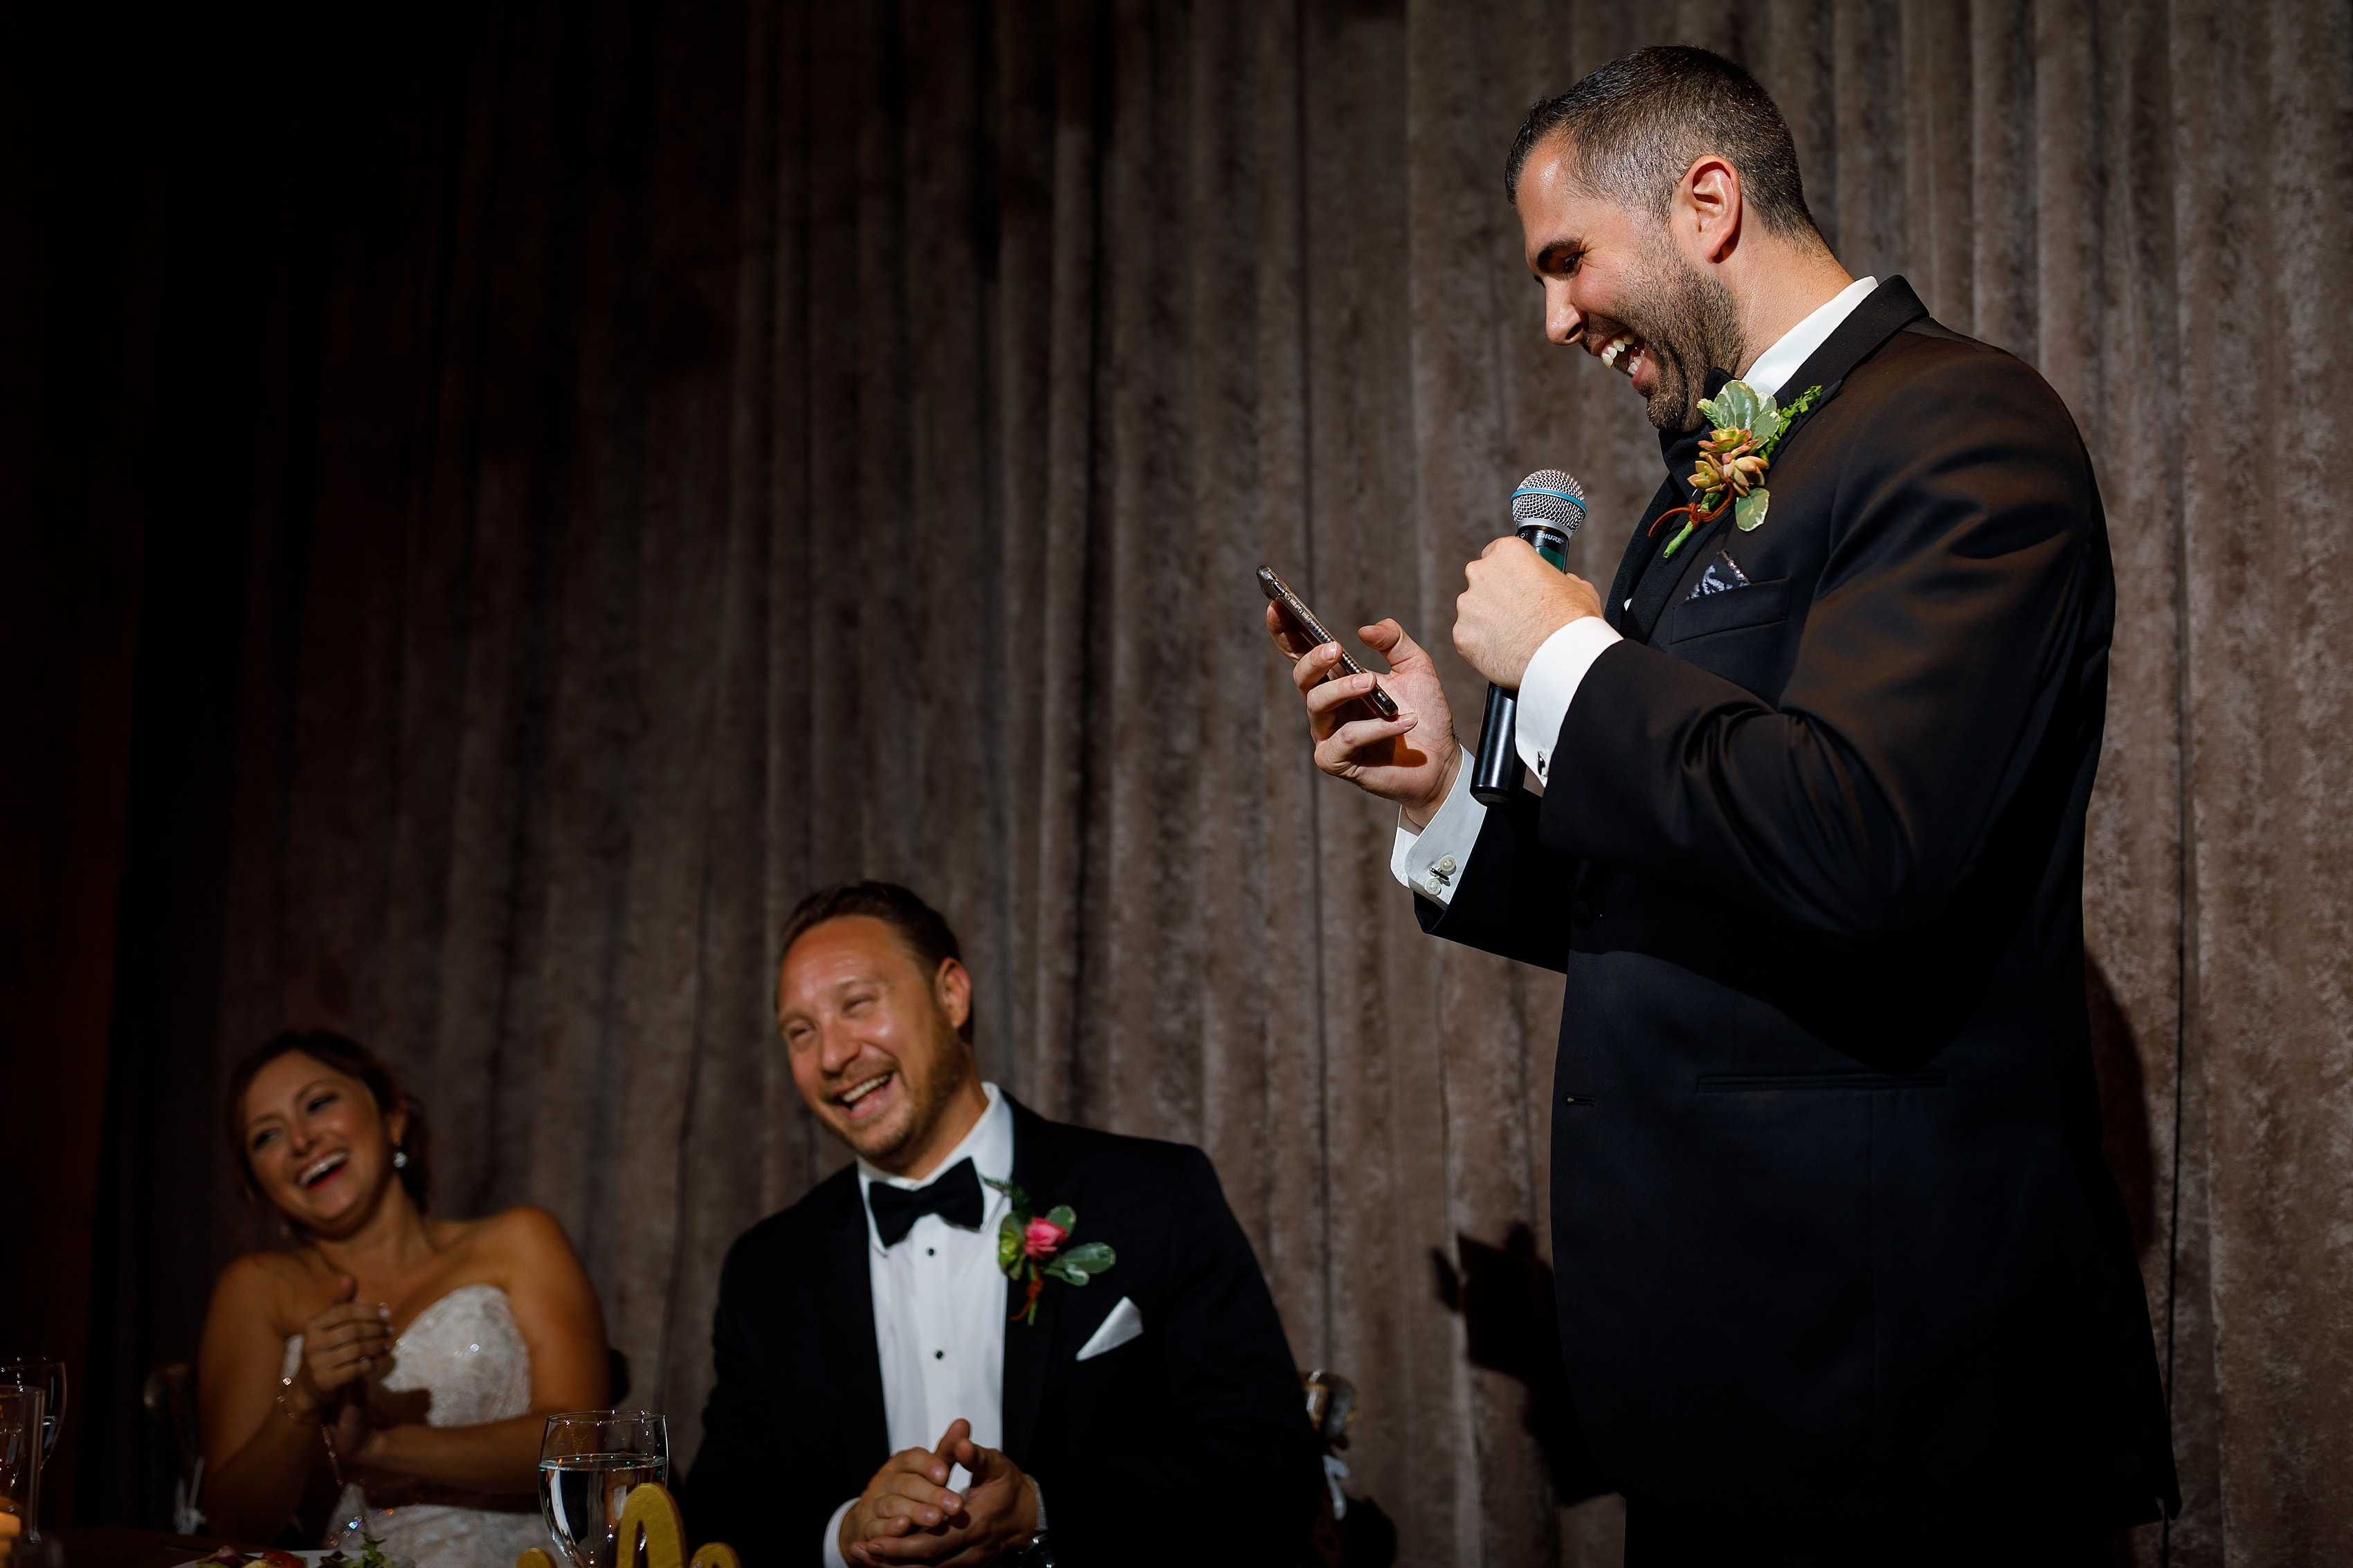 groomsman gives toast during wedding reception at Bridgeport Art Center Sculpture Garden in Chicago